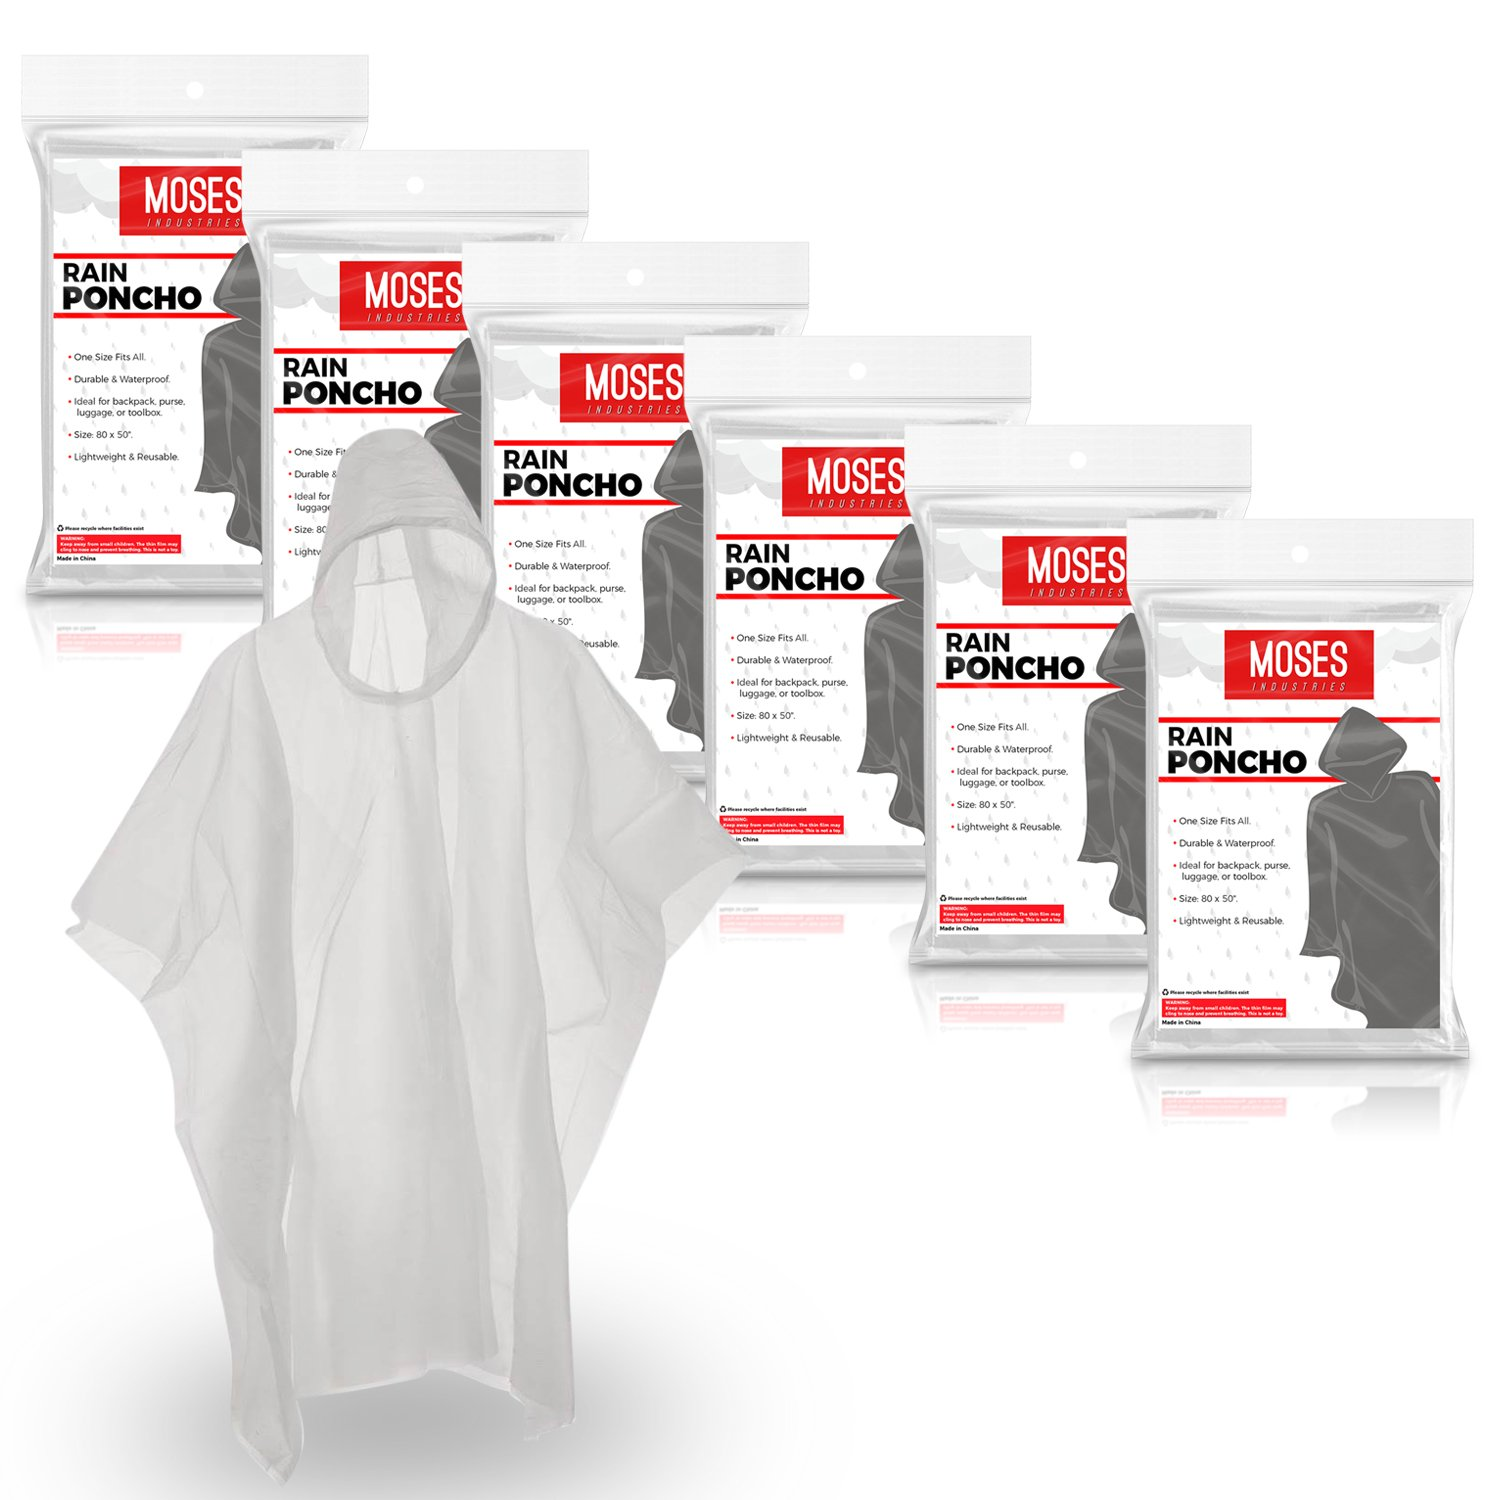 Rain Ponchos for Adults: Lightweight and Waterproof Disposable Emergency Poncho for Travel and Outdoor Activities - Clear (6 Pack) - Fits Men and Women by Moses Industries